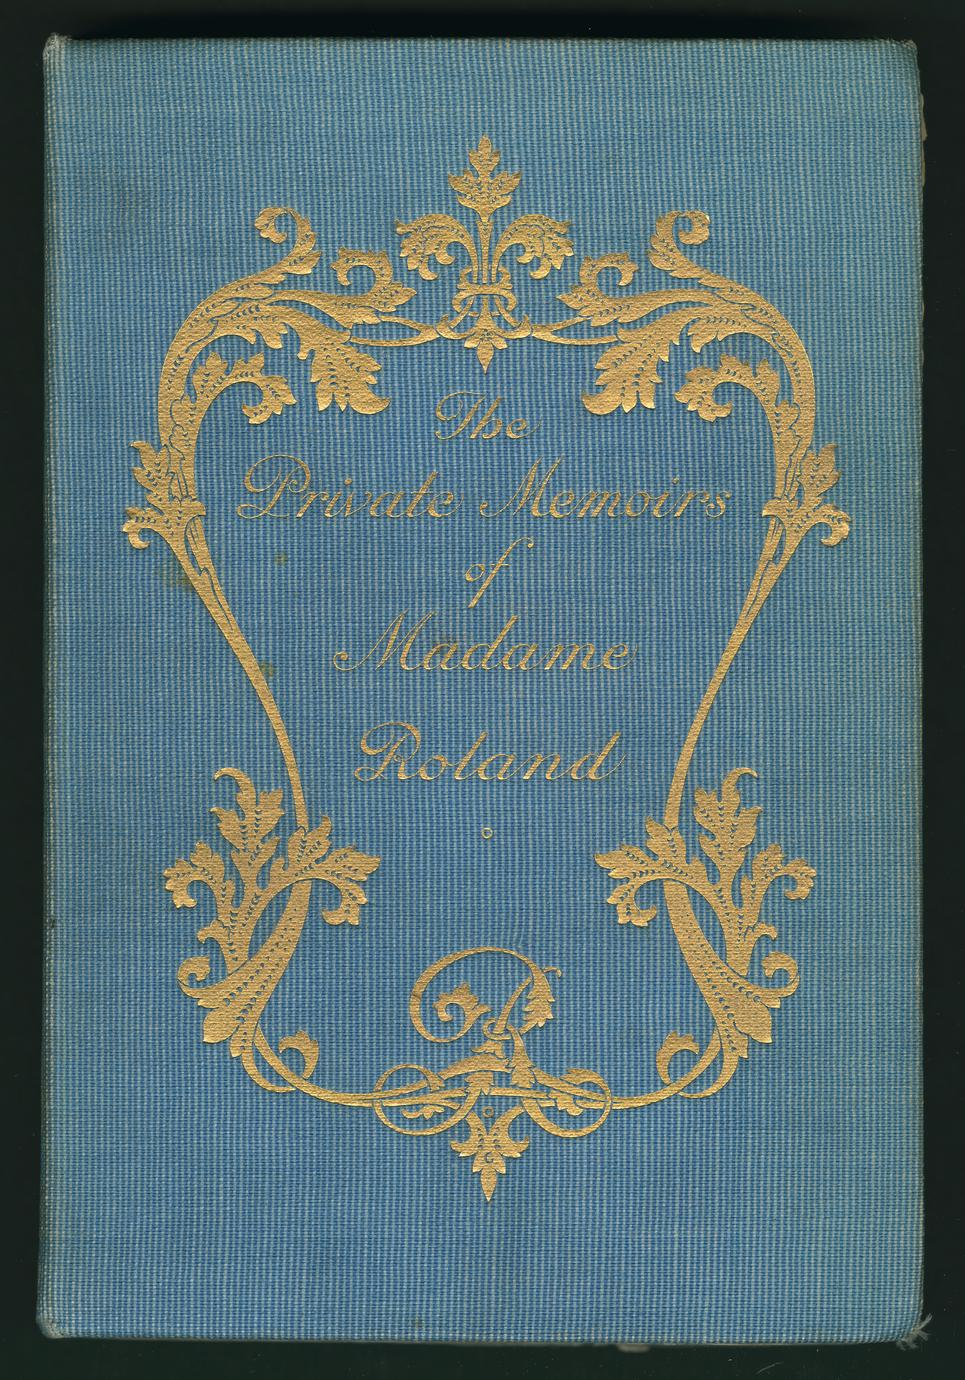 The private memoirs of Madame Roland (1 of 2)